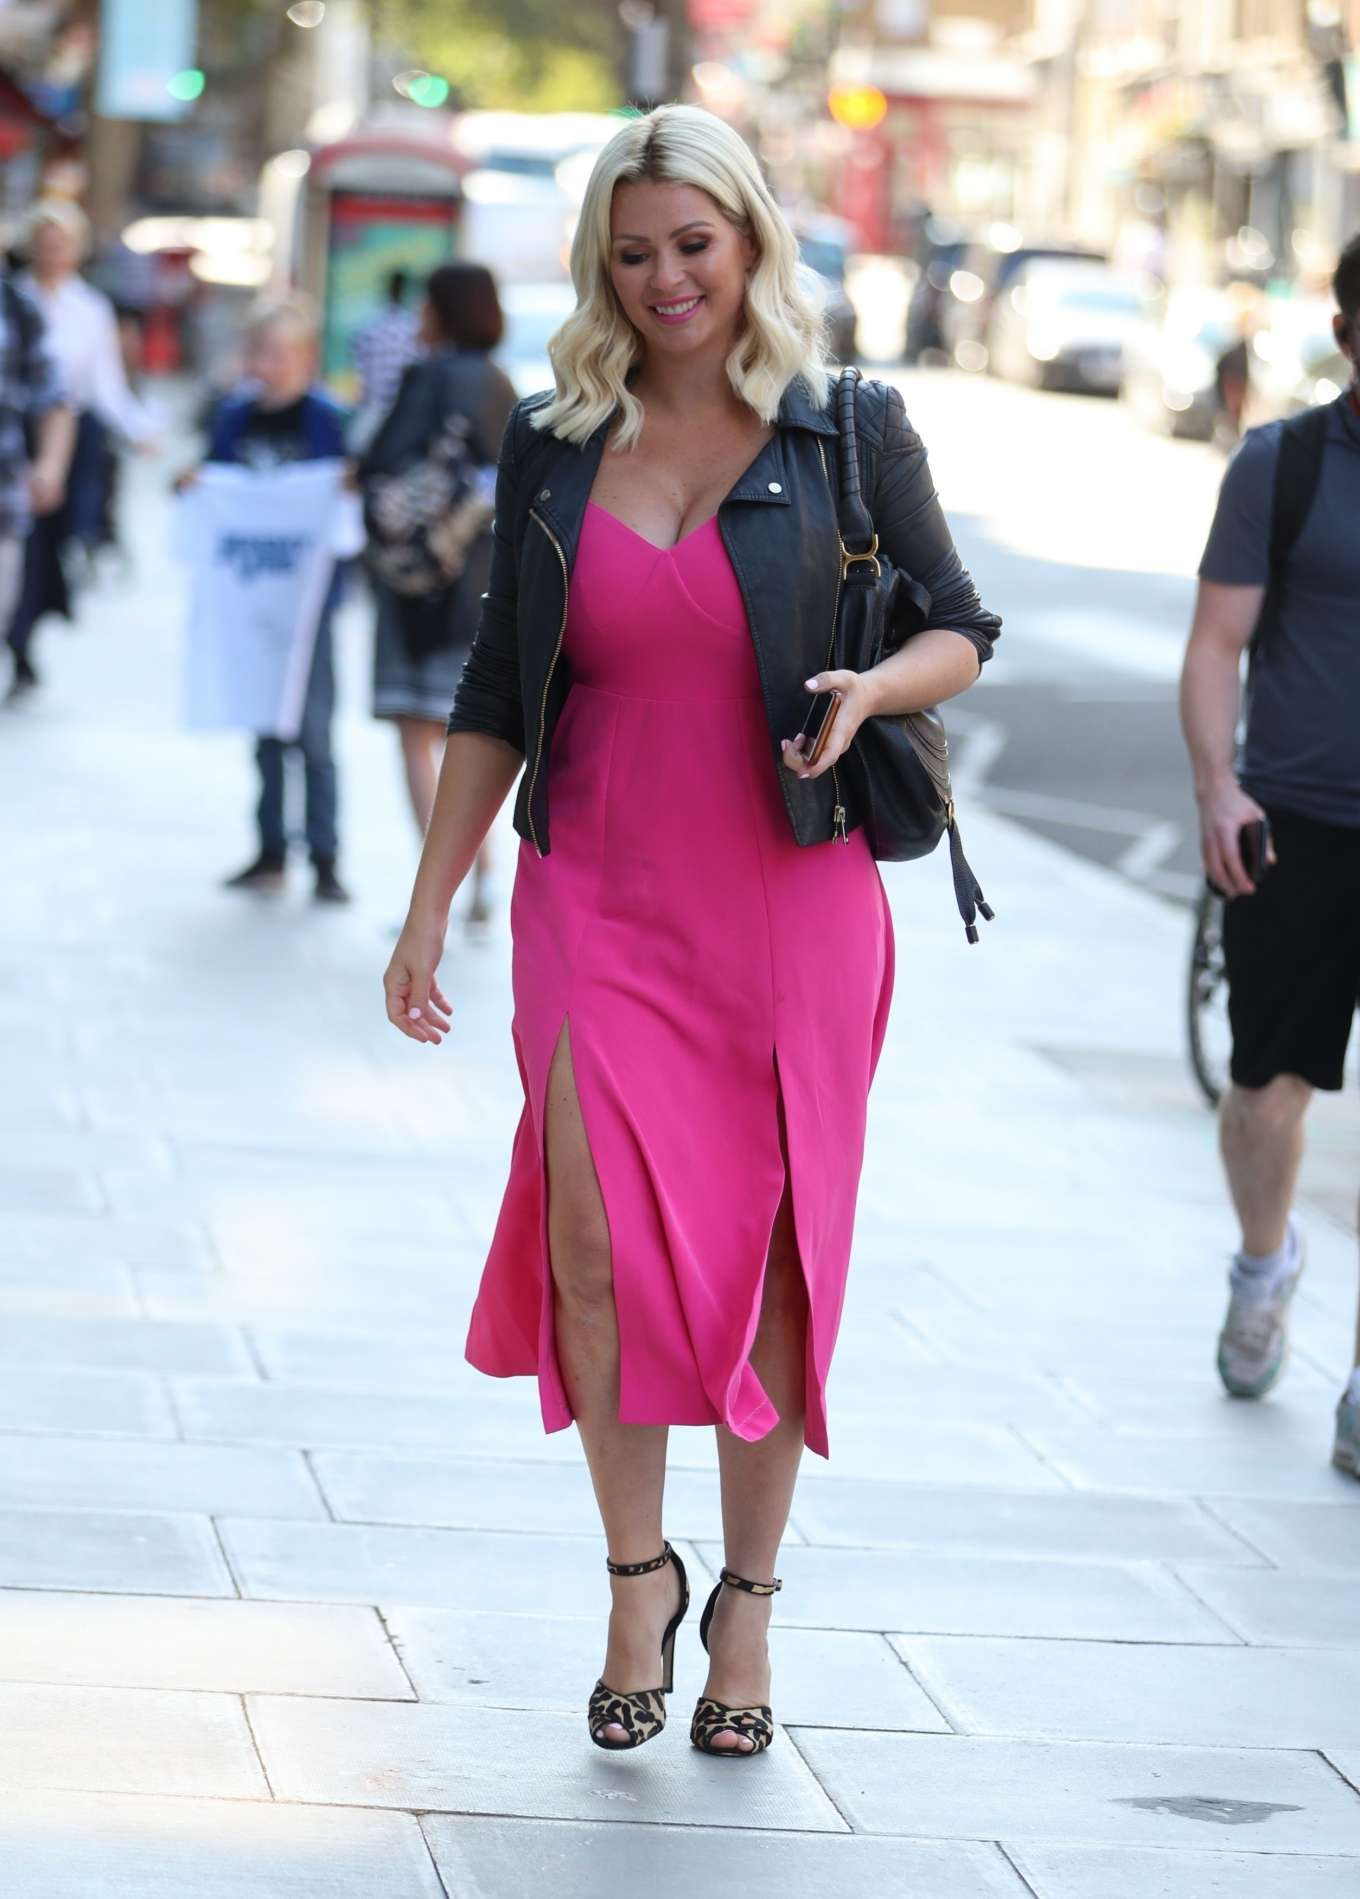 Nicola McLean 2019 : Nicola Mclean – In flirty pink dress exits Jeremy Vine show in London-05